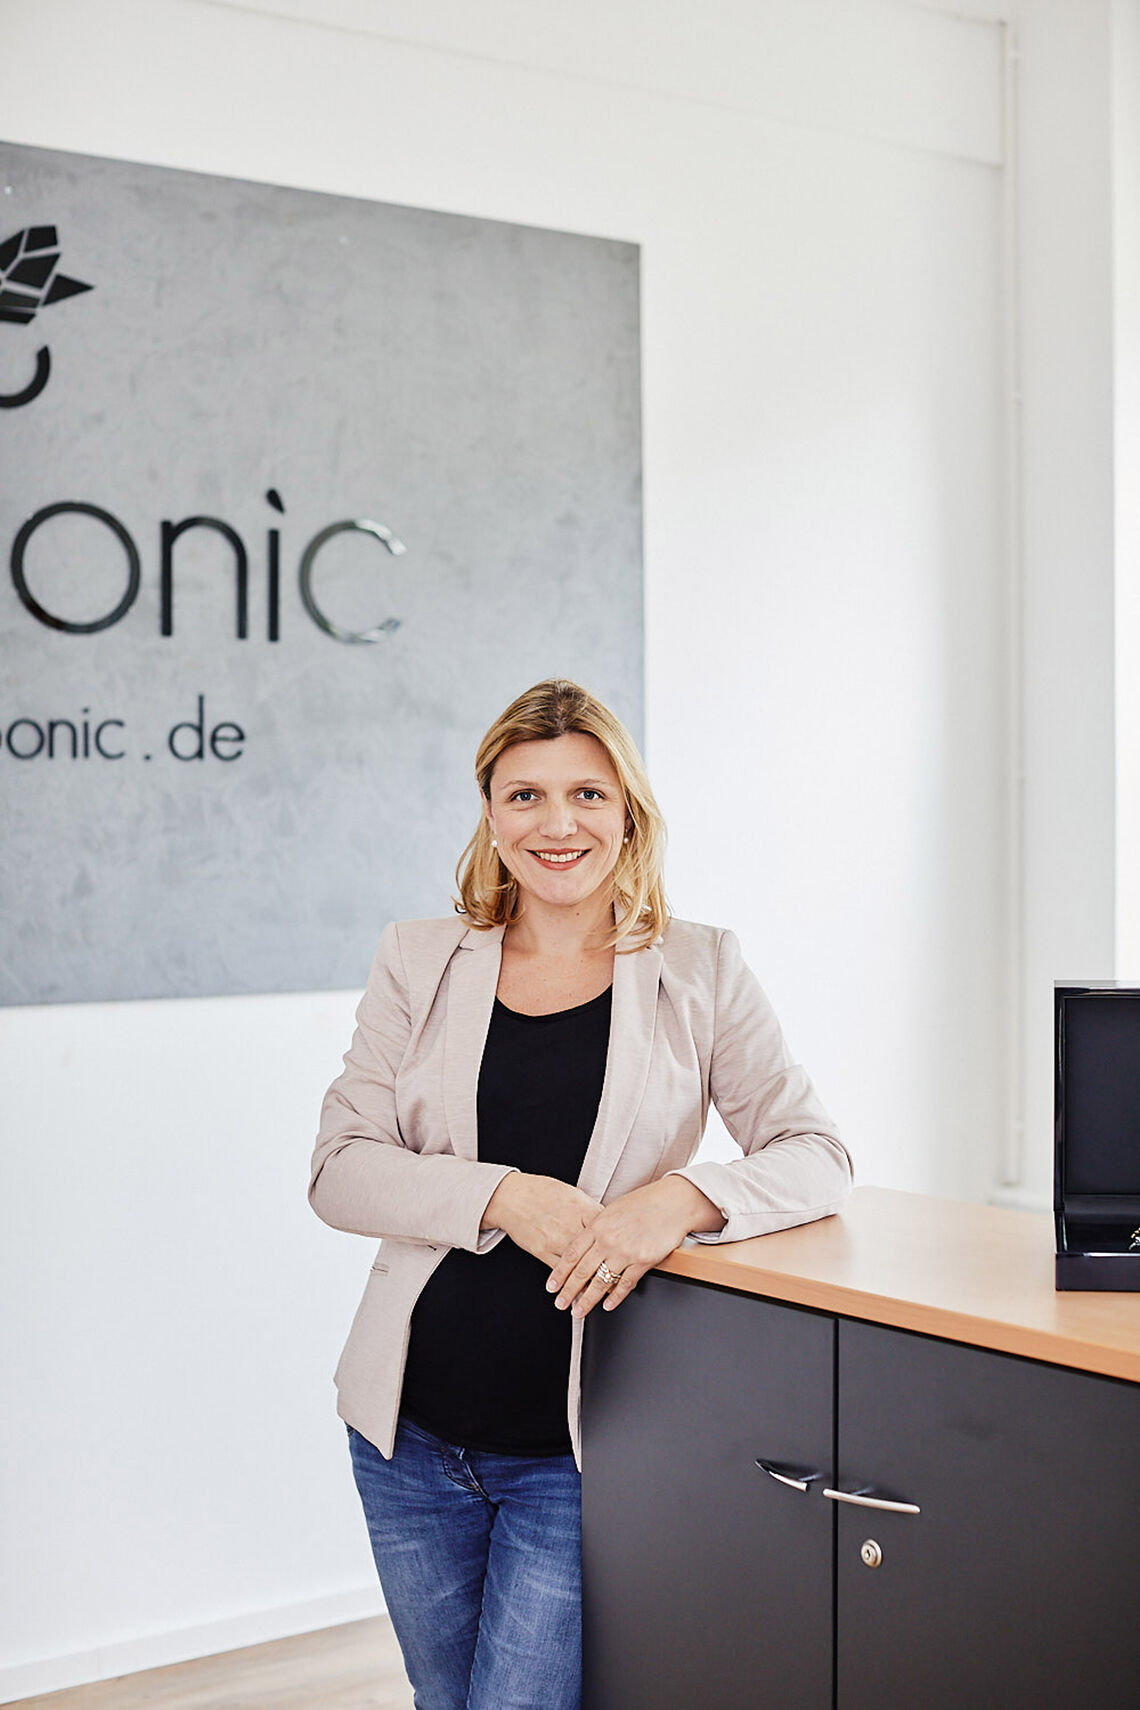 Sabine Linz, founder of amoonic.de, leans against a shelf in her office